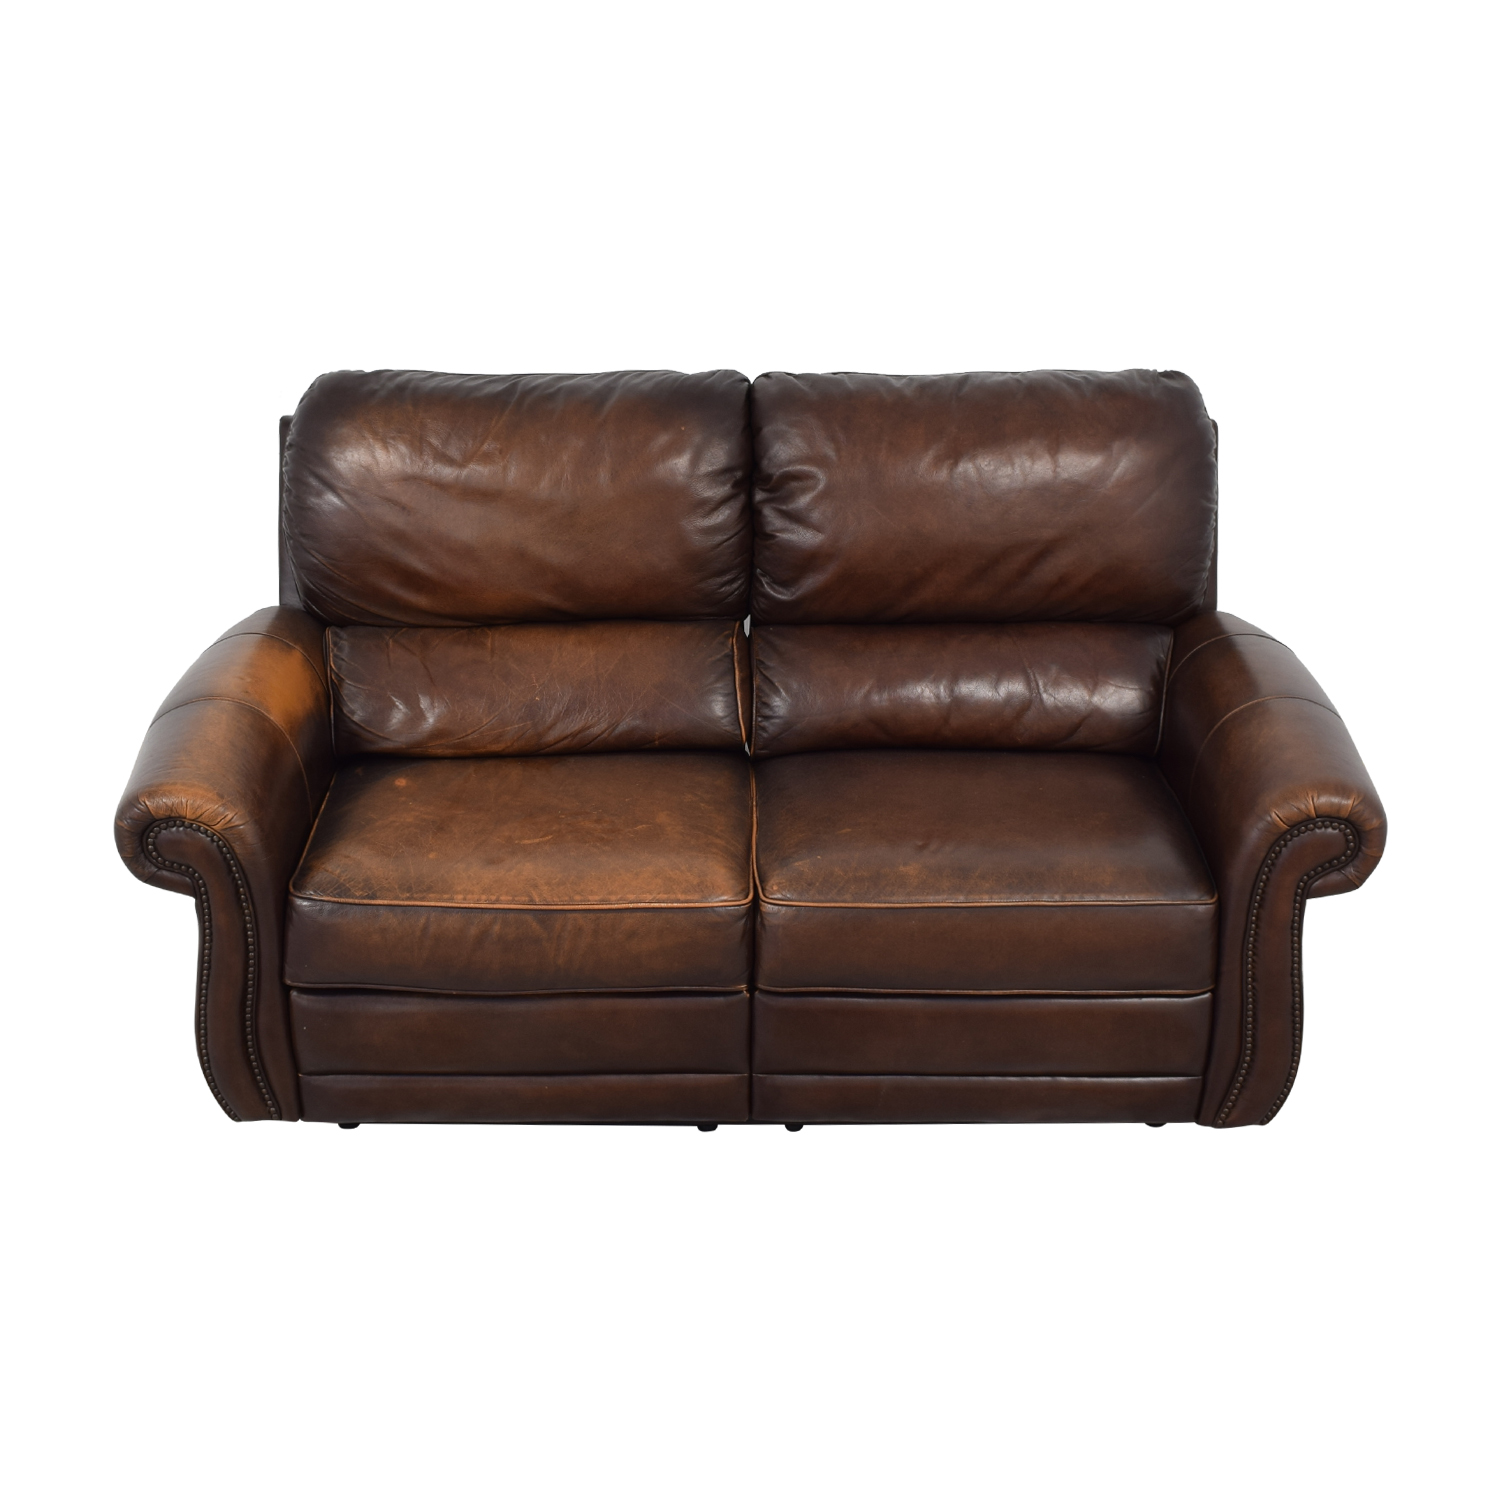 shop Raymour & Flanigan Raymour & Flanigan Leather Loveseat Recliner online